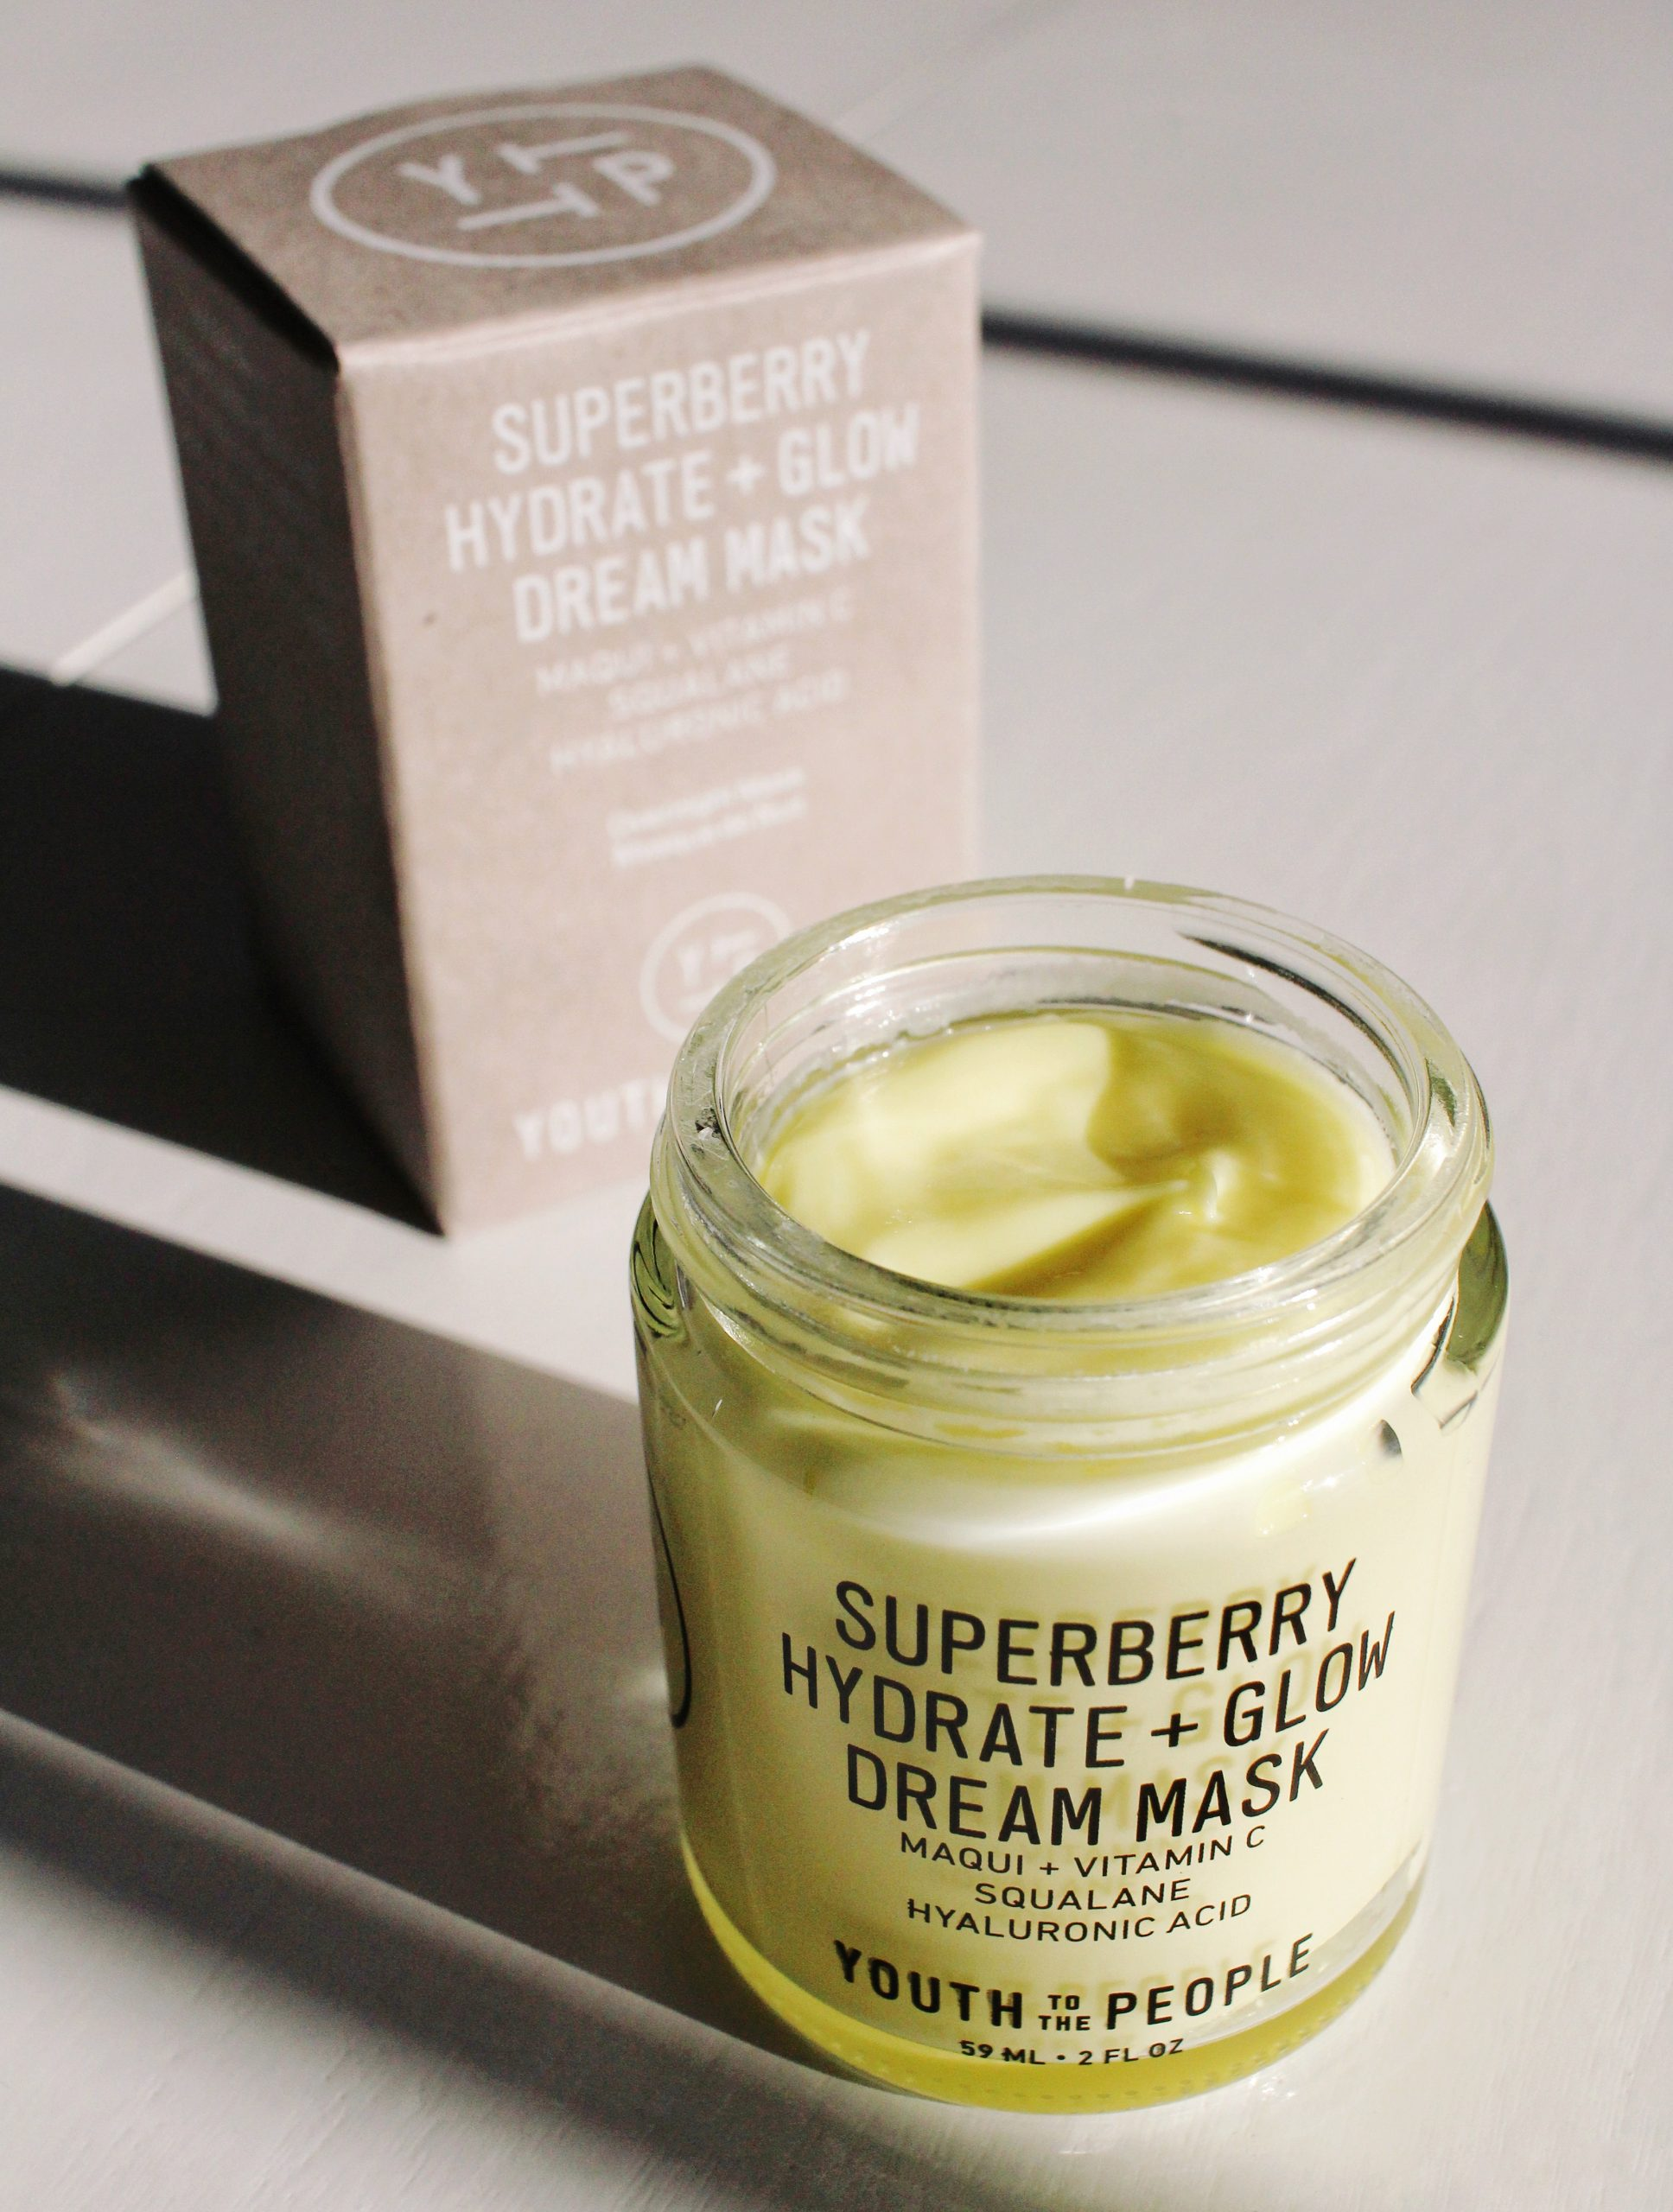 Superberry Hydrate + Glow Dream Mask Review